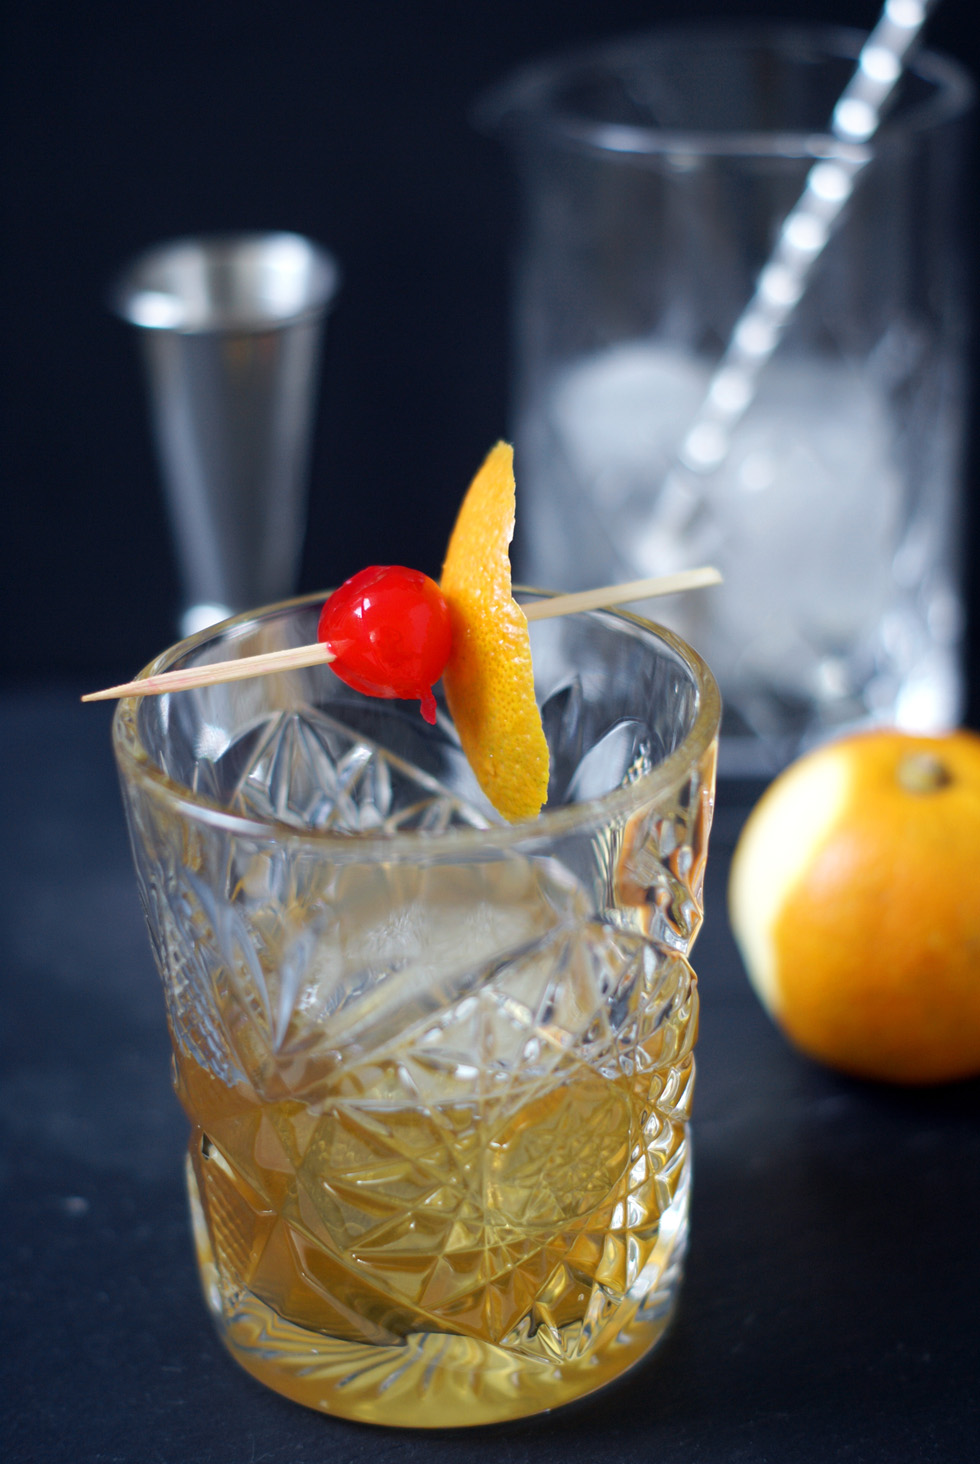 Old Fashioned Bitterorangensirup